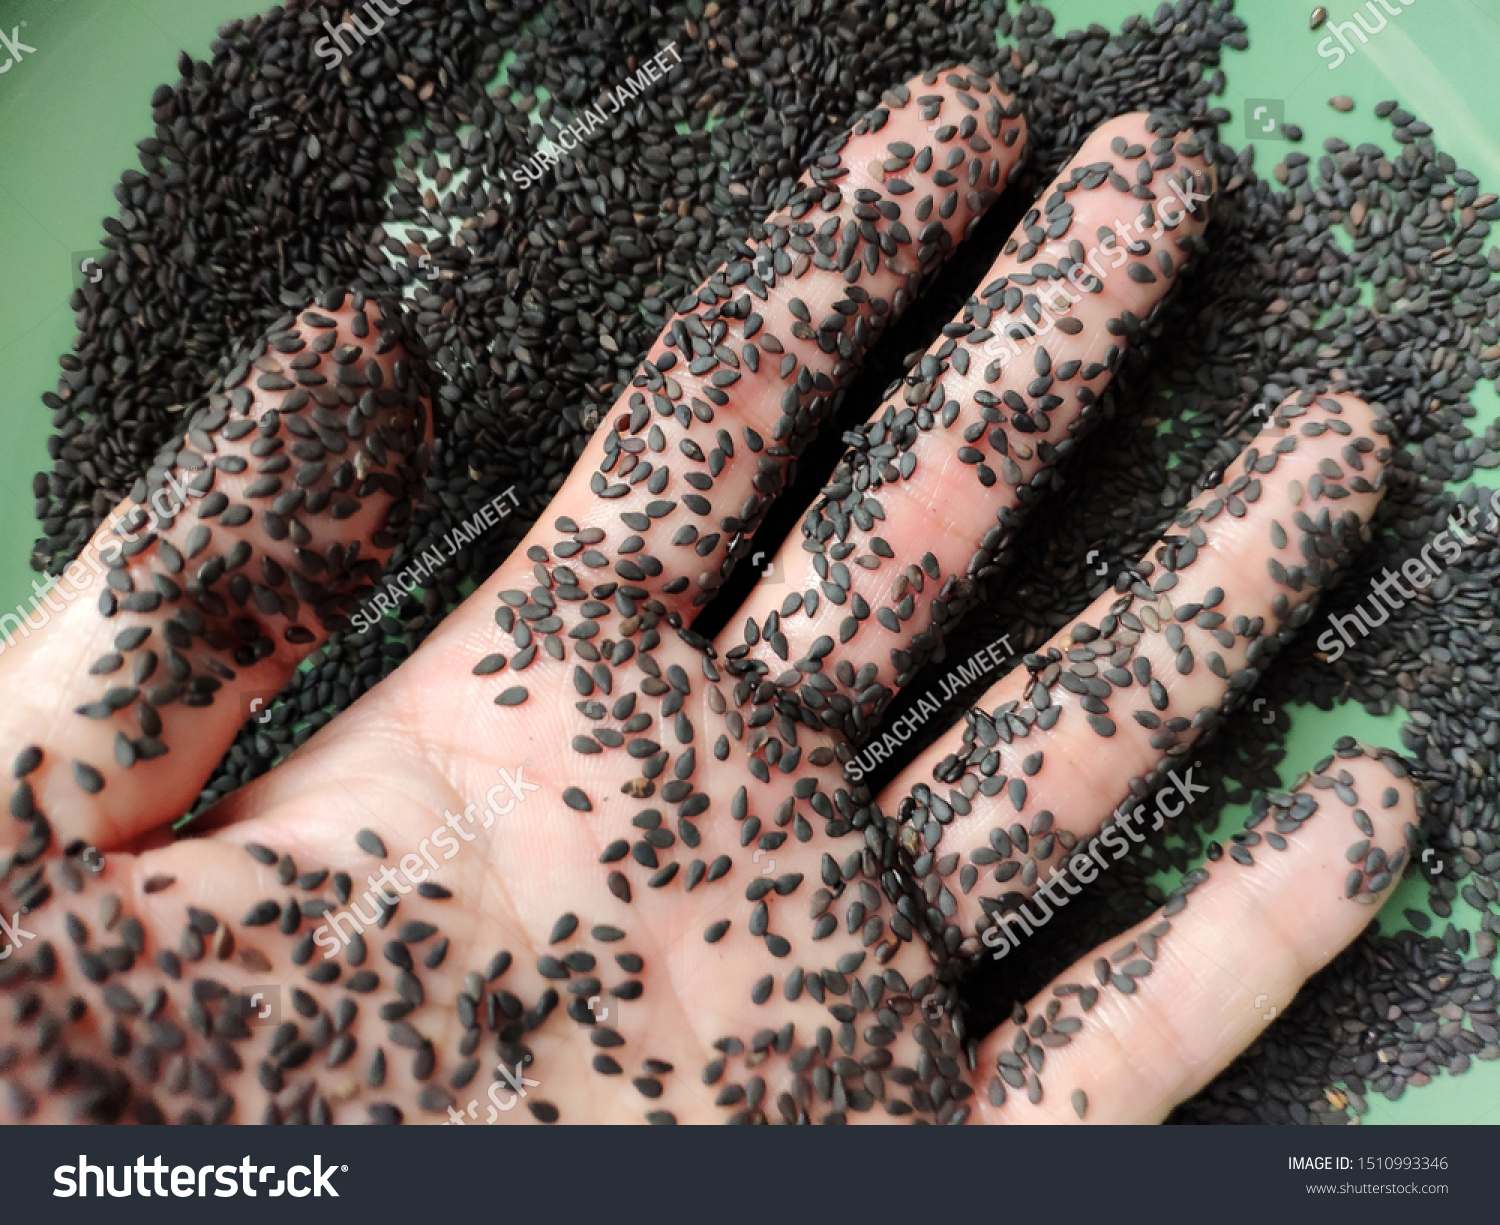 Hand Stained Black Sesame Seeds This Healthcare Medical Stock